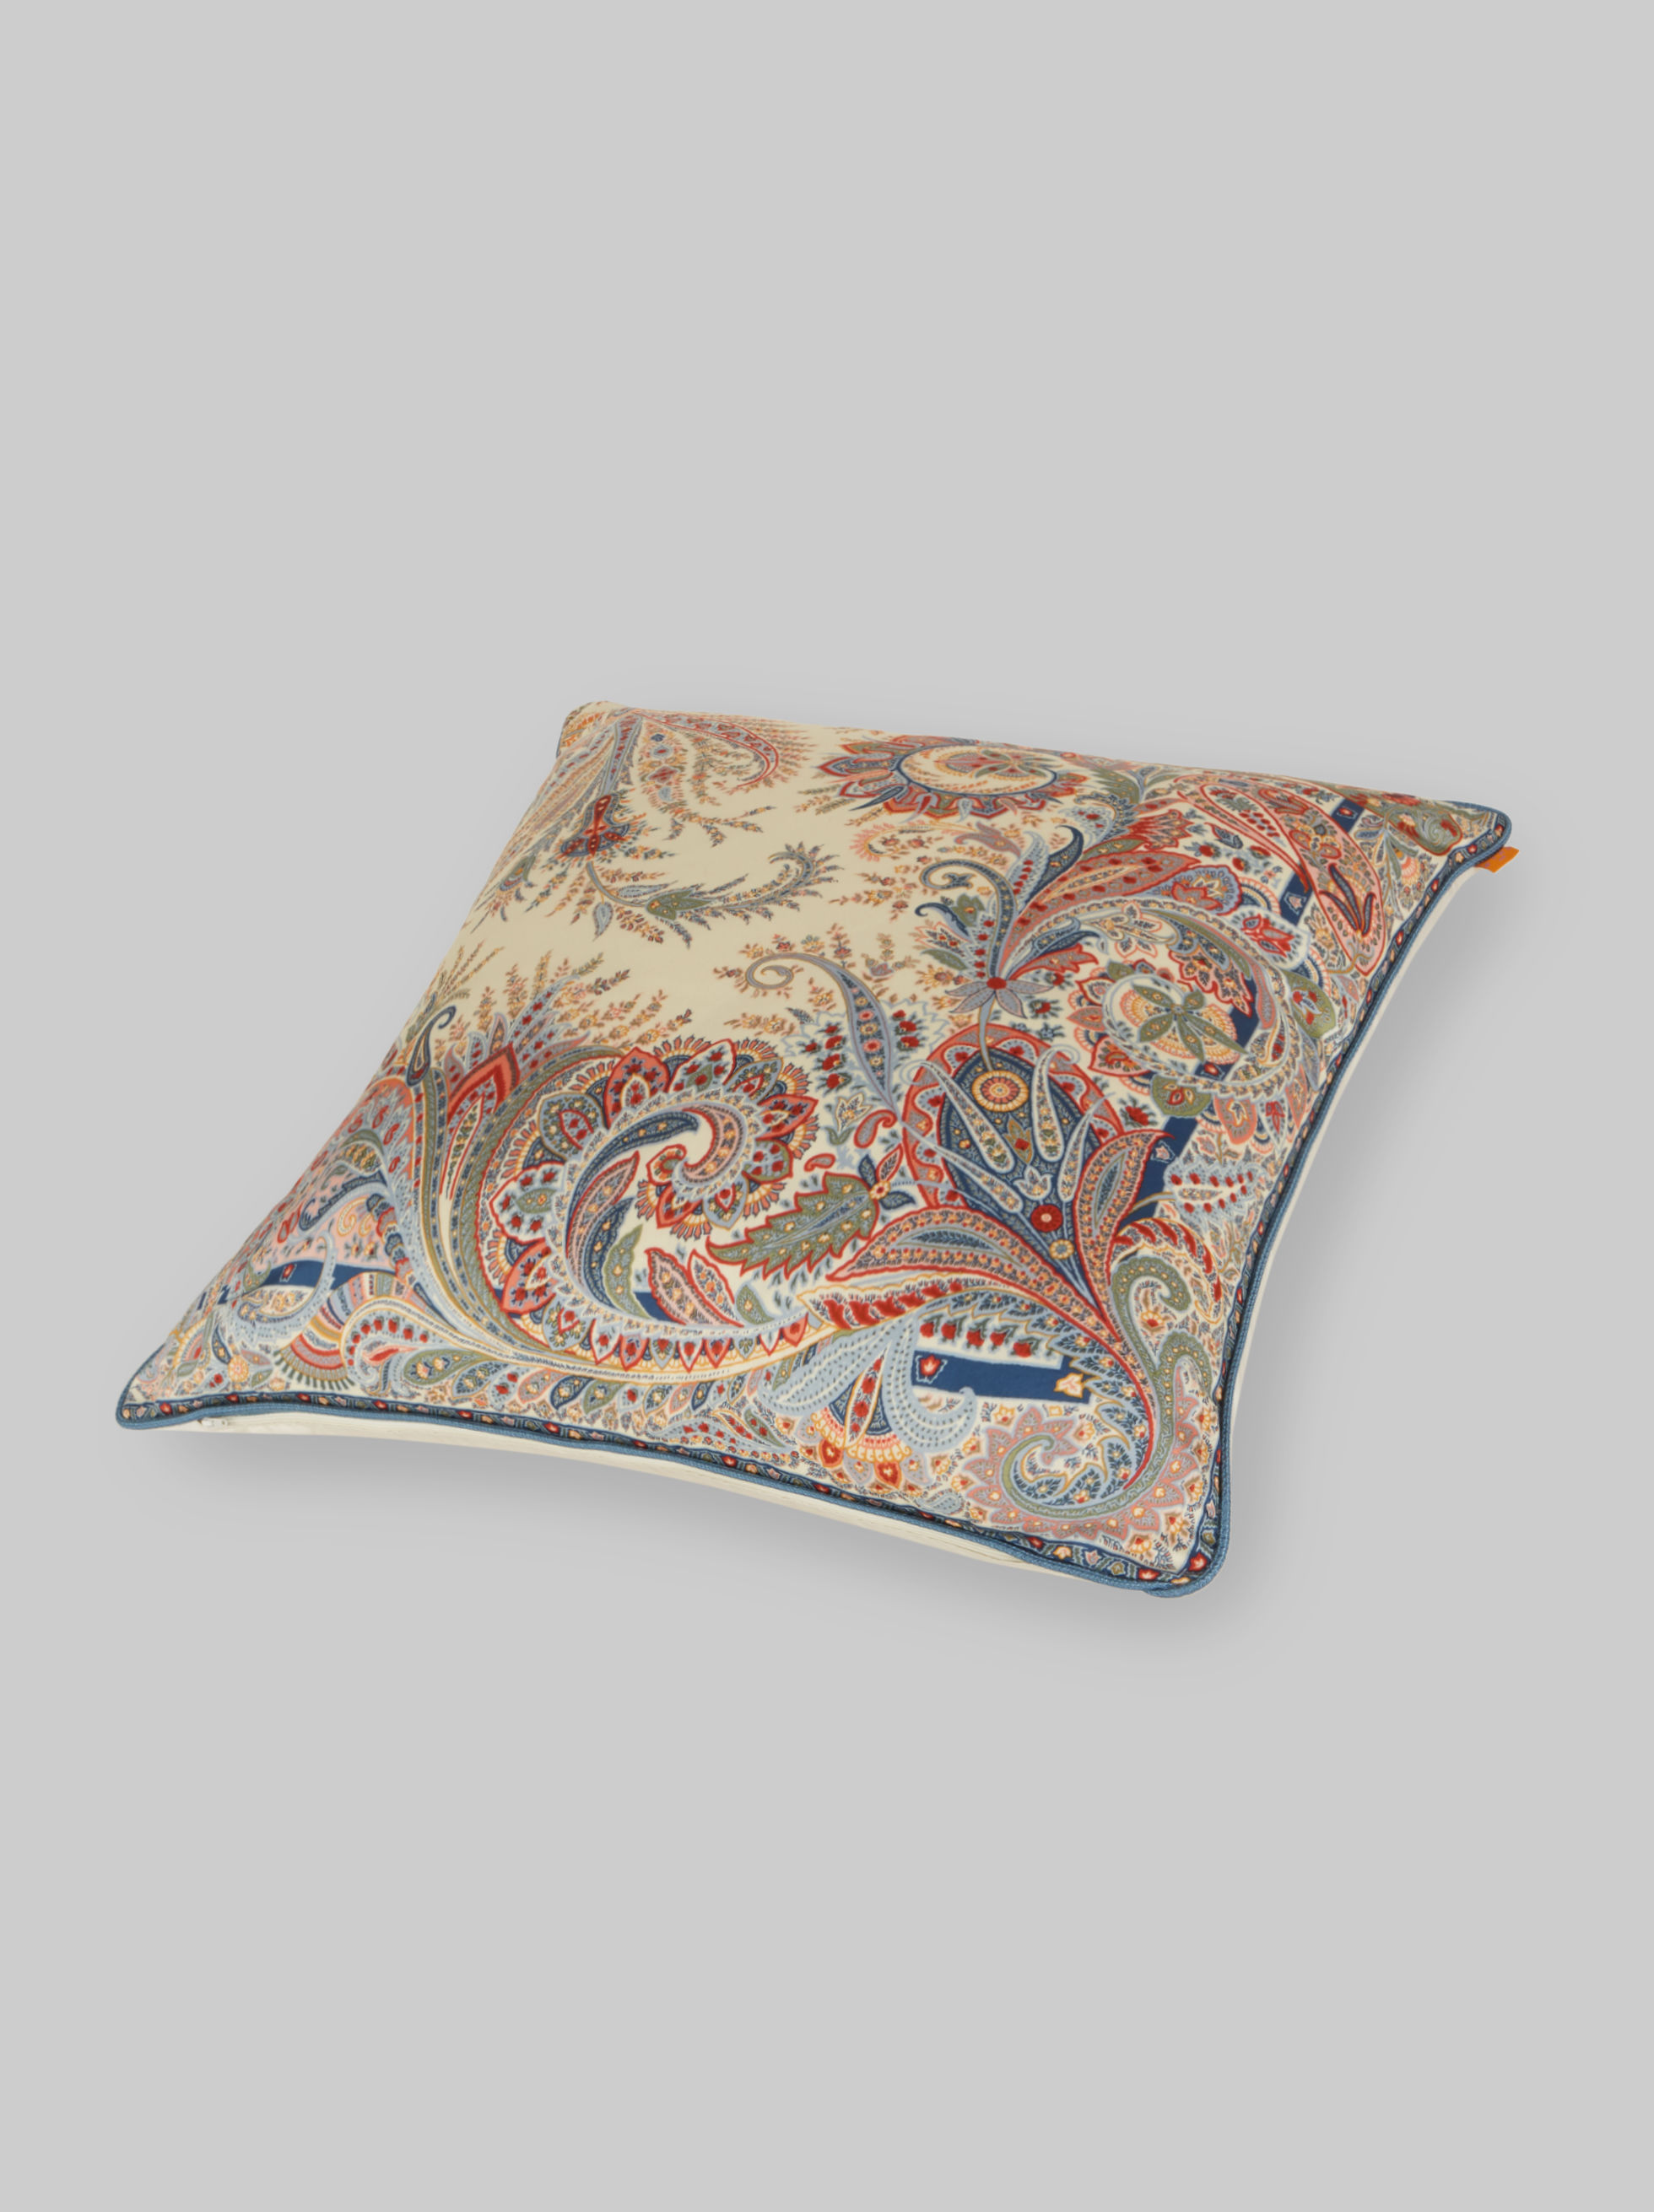 SATEEN CUSHION WITH PAISLEY DECORATIONS